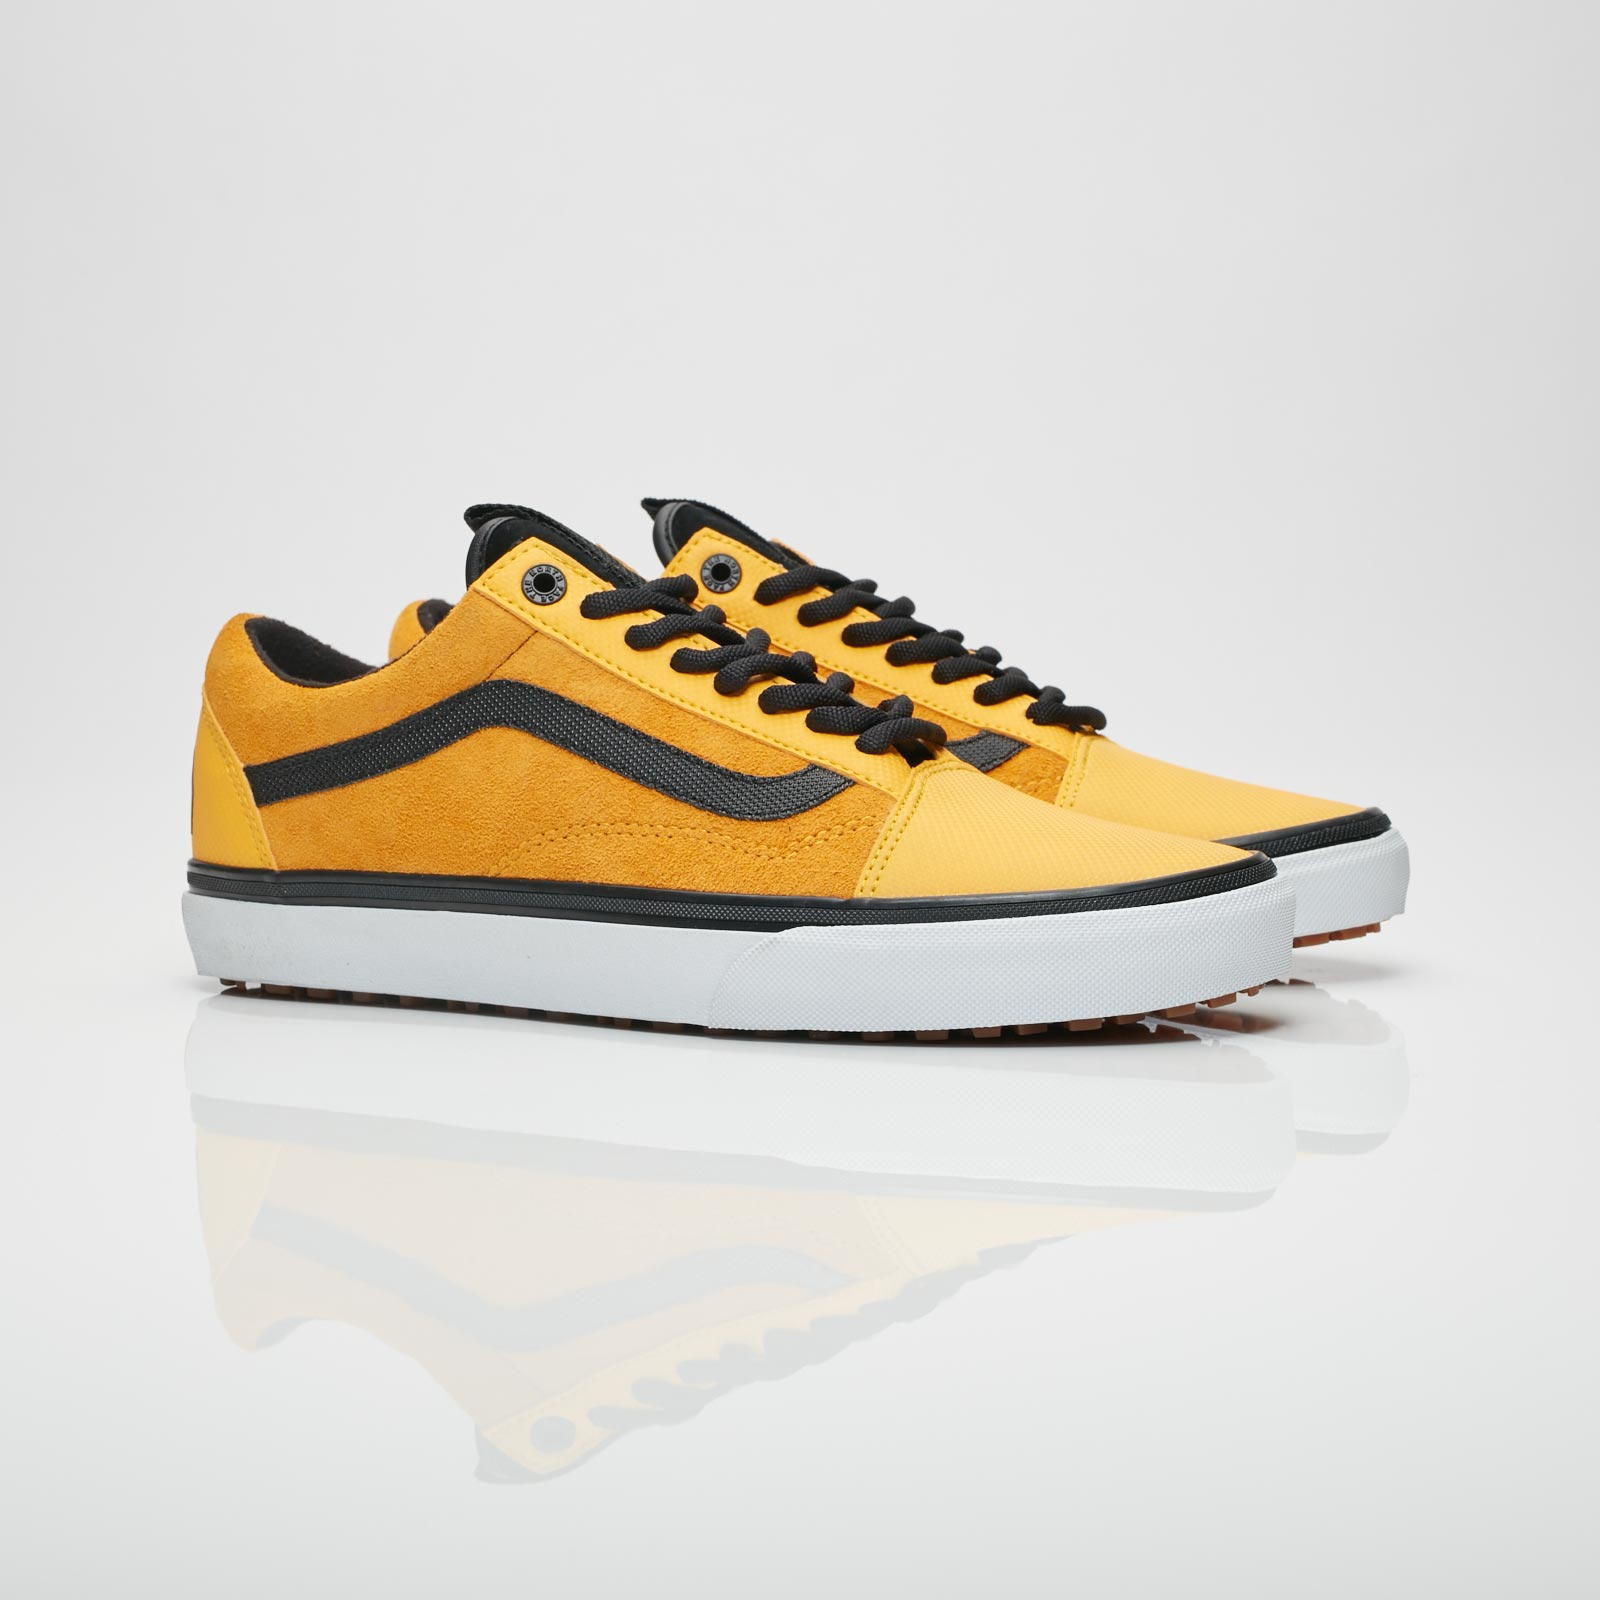 Vans Old Skool MTE DX x The North Face - Vn0a348gqwi ... 1c4c7ee45